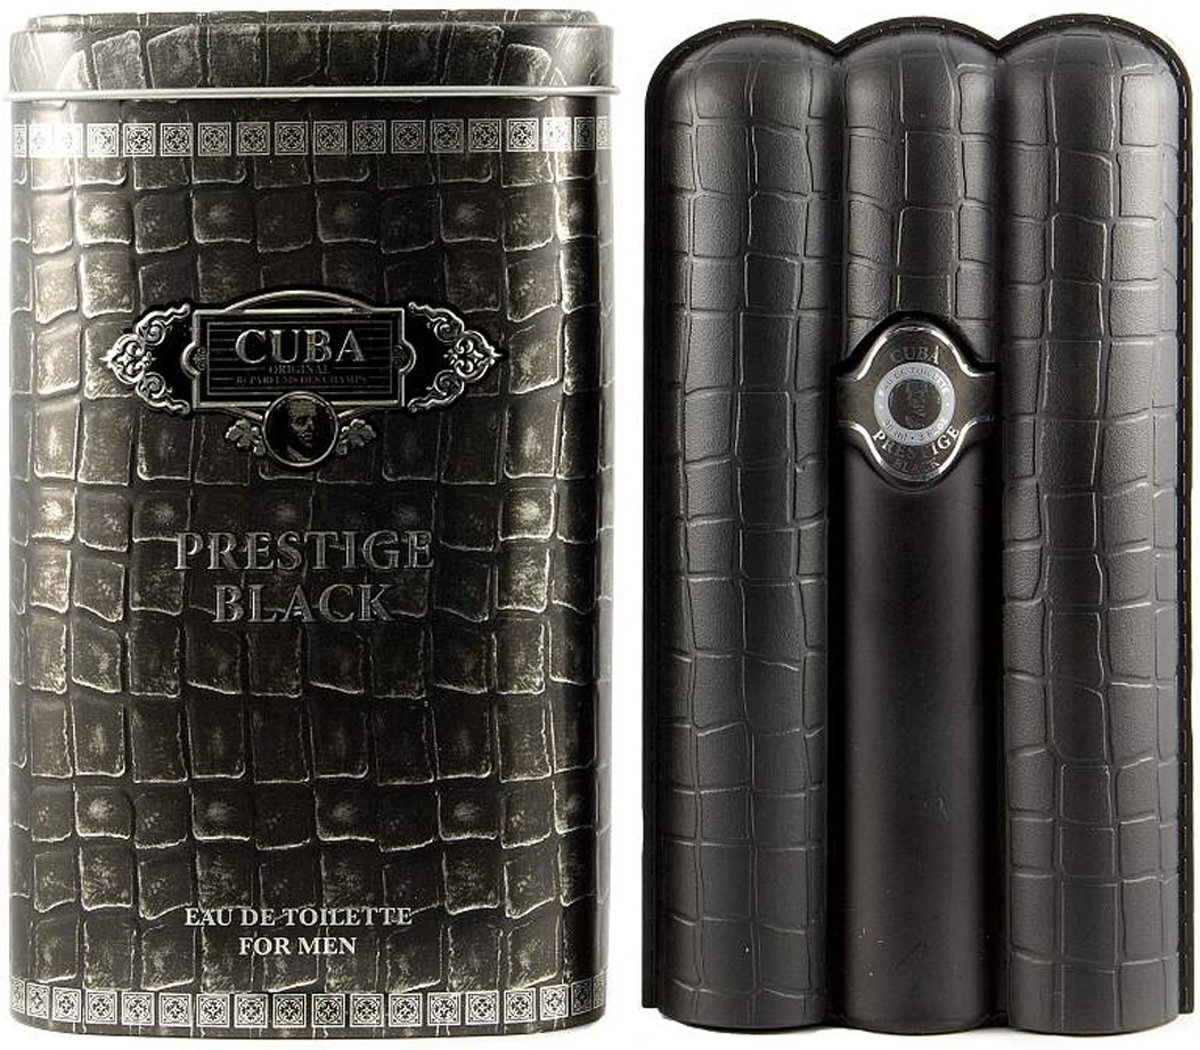 Cuba Prestige Black 90ml EDT Spray